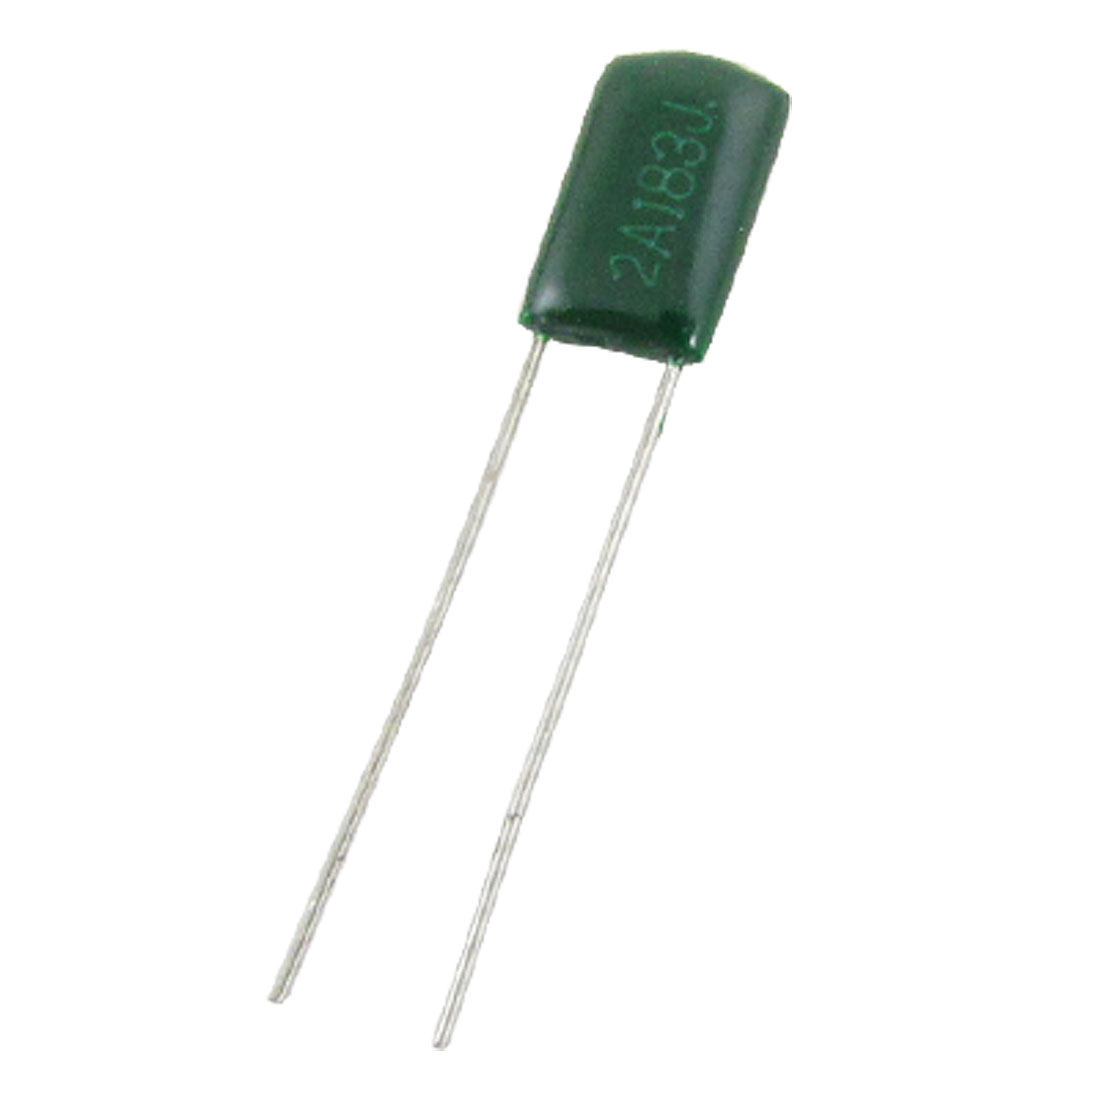 18000pF 0.018uF 18nF 100V Mylar Polyester Film Capacitors(Bag of 100)